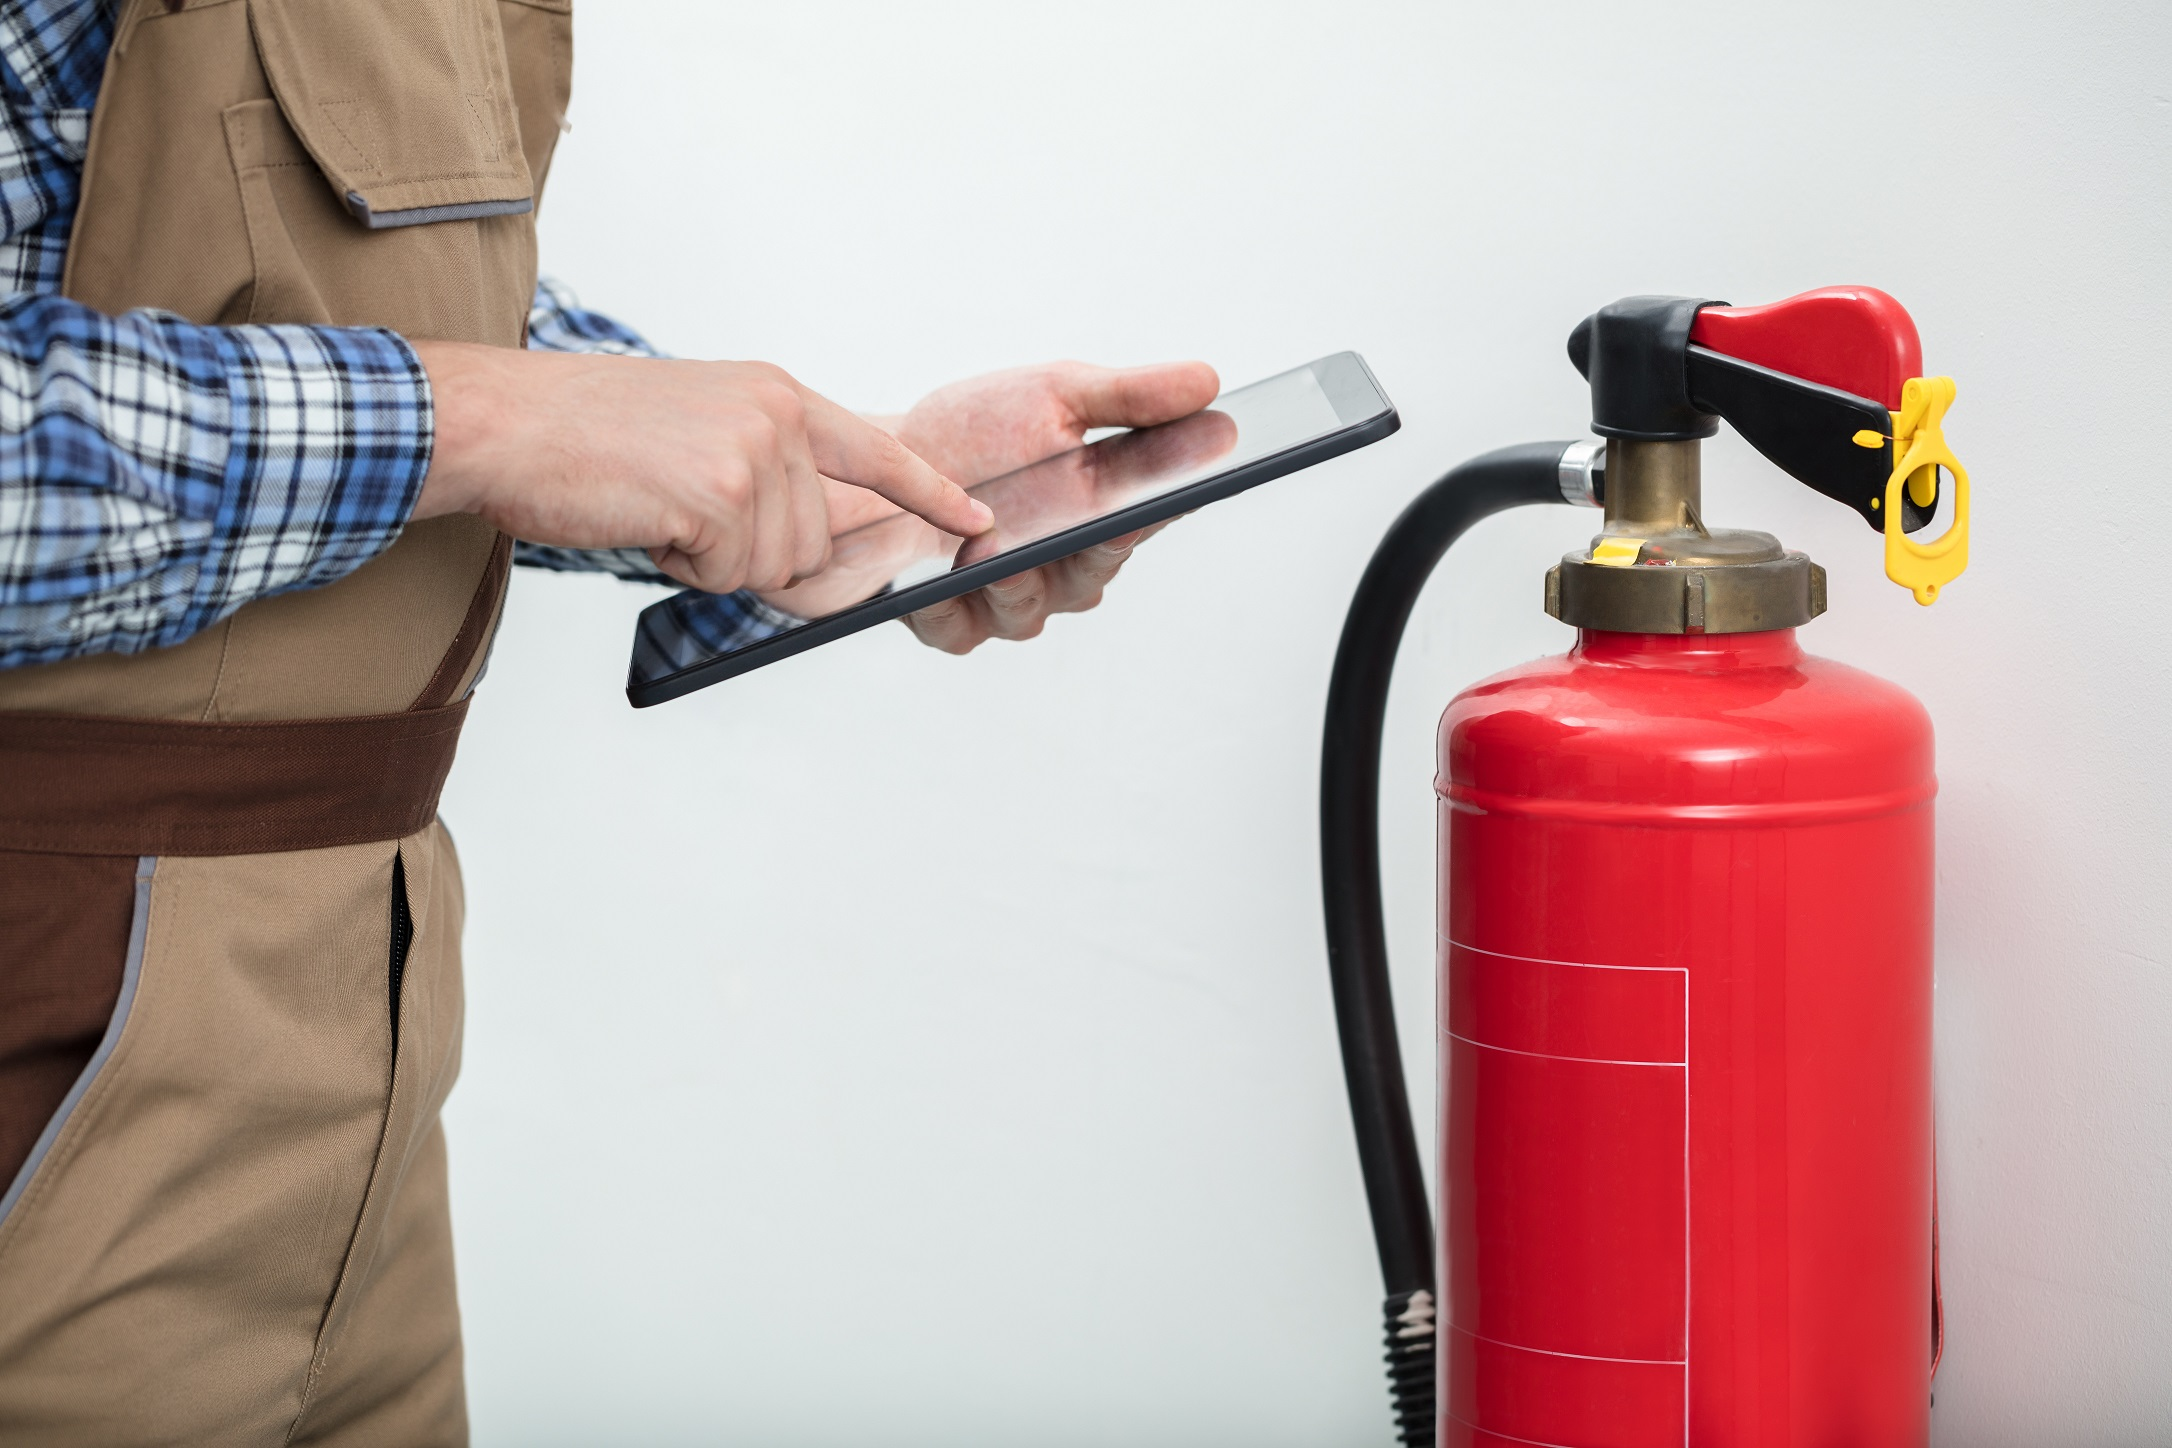 Barcode Fire Extinguisher Inspection System Helps Address Top 5 OSHA Failures